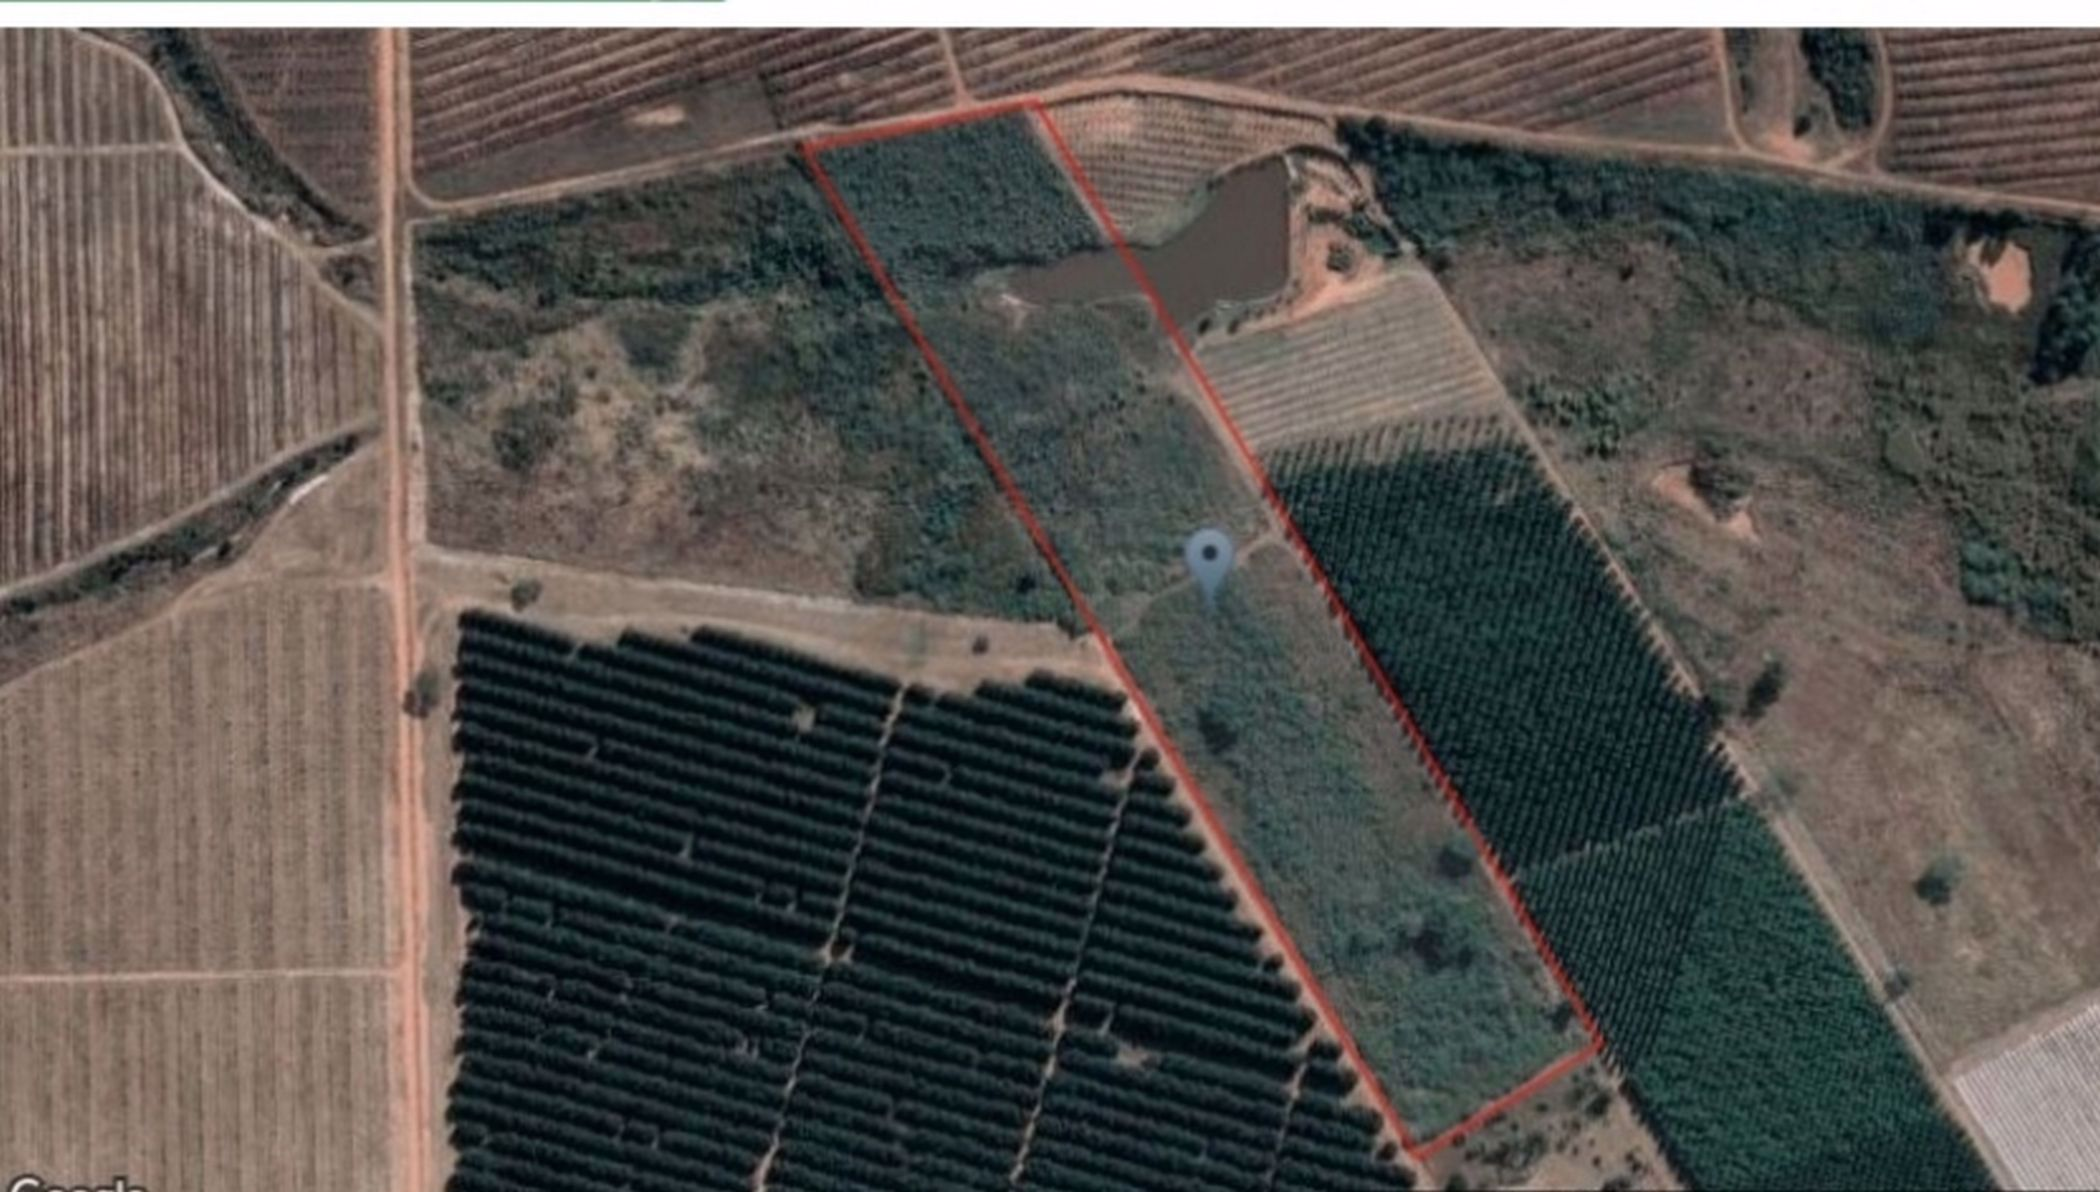 45000 m² farm vacant land for sale in White River AH